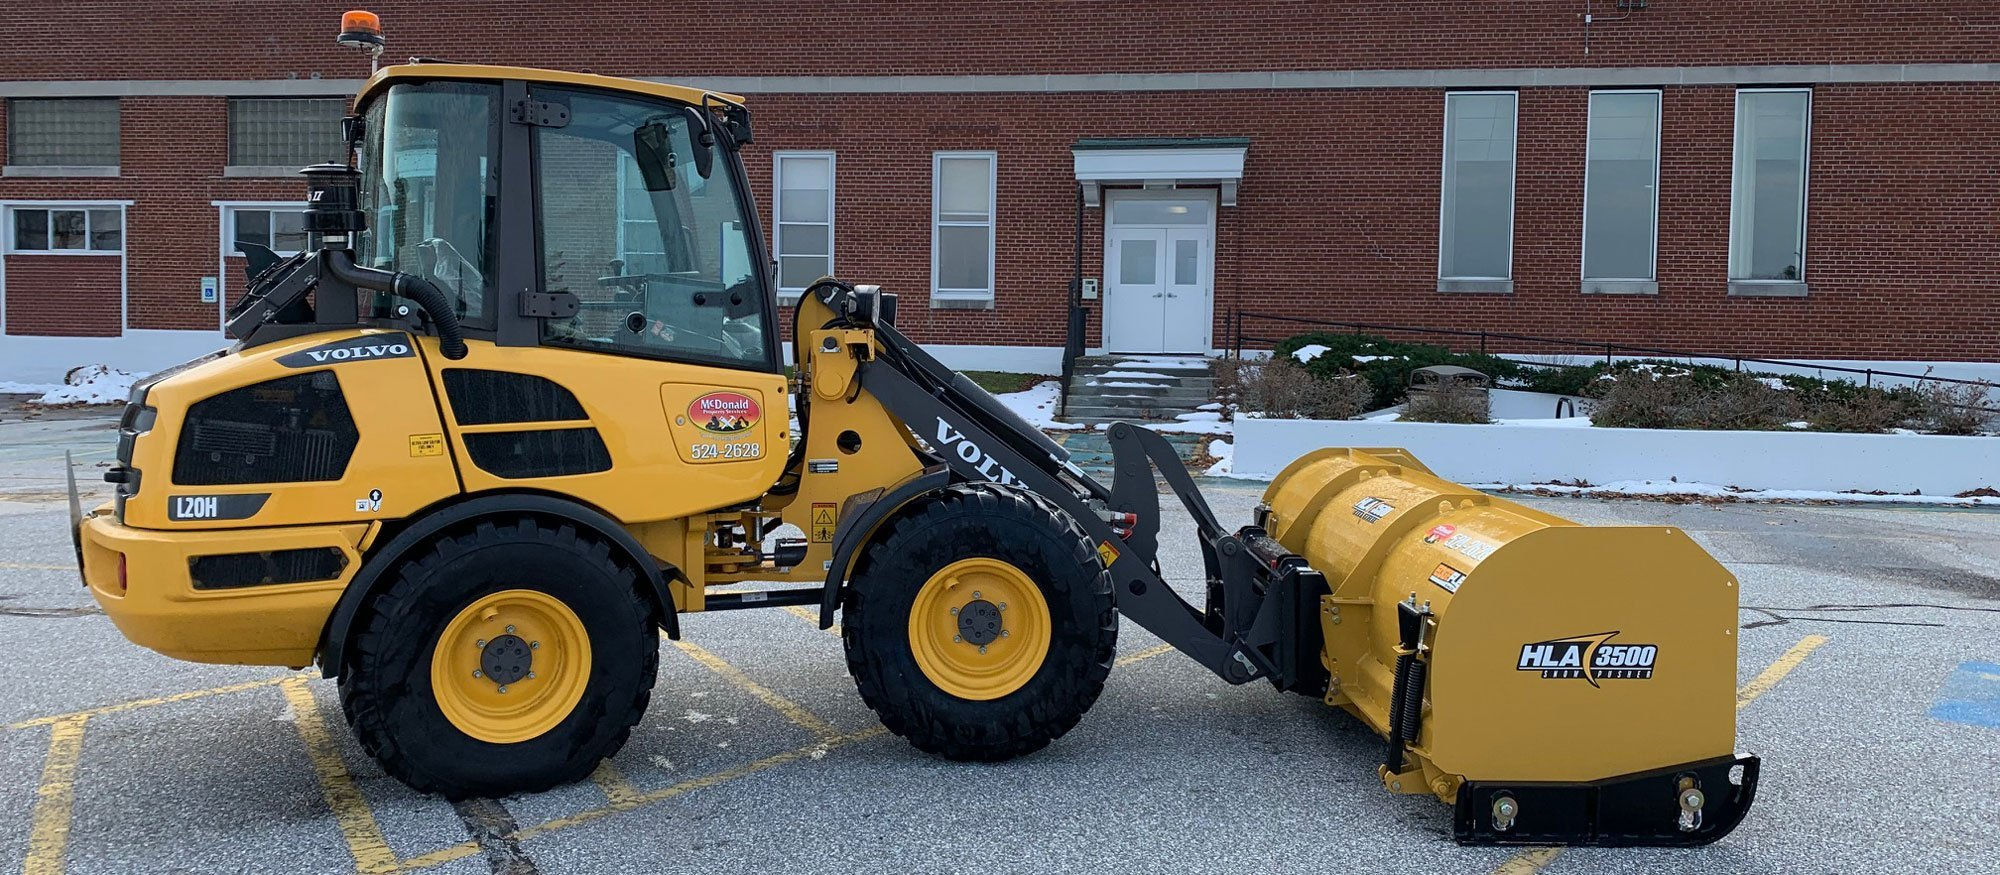 St-Albans-Commercial-Snow-Removal-by-McDonald-Property-Maintenance-Loader